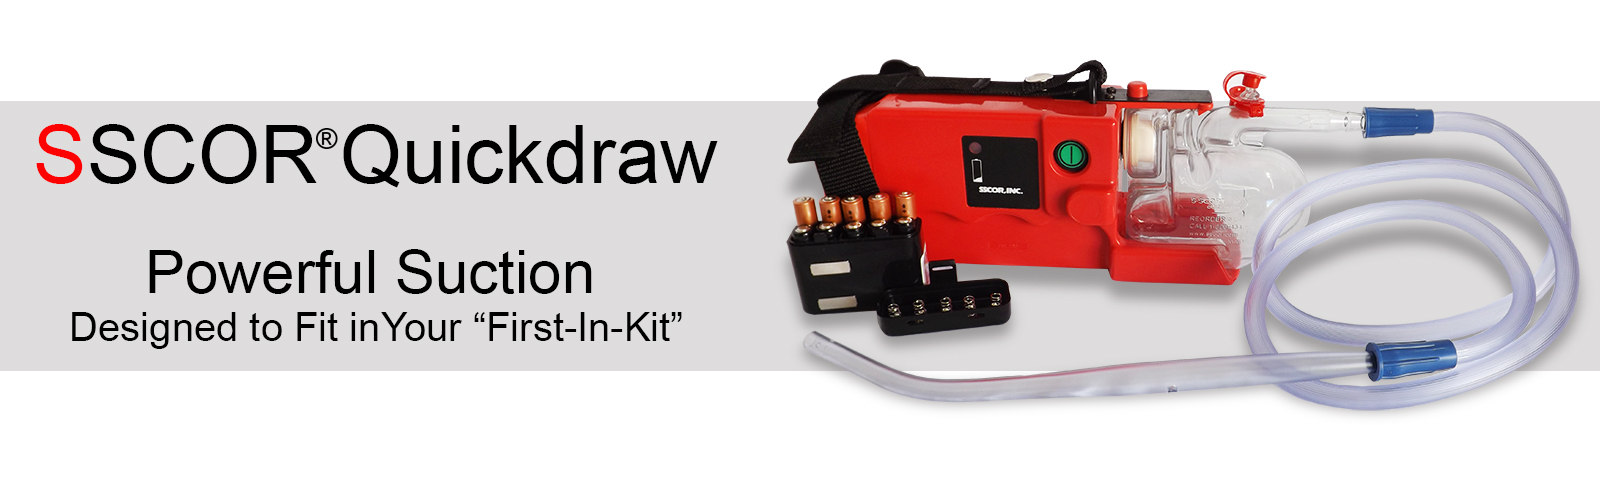 Quickdraw Alkaline Powered Suction Unit